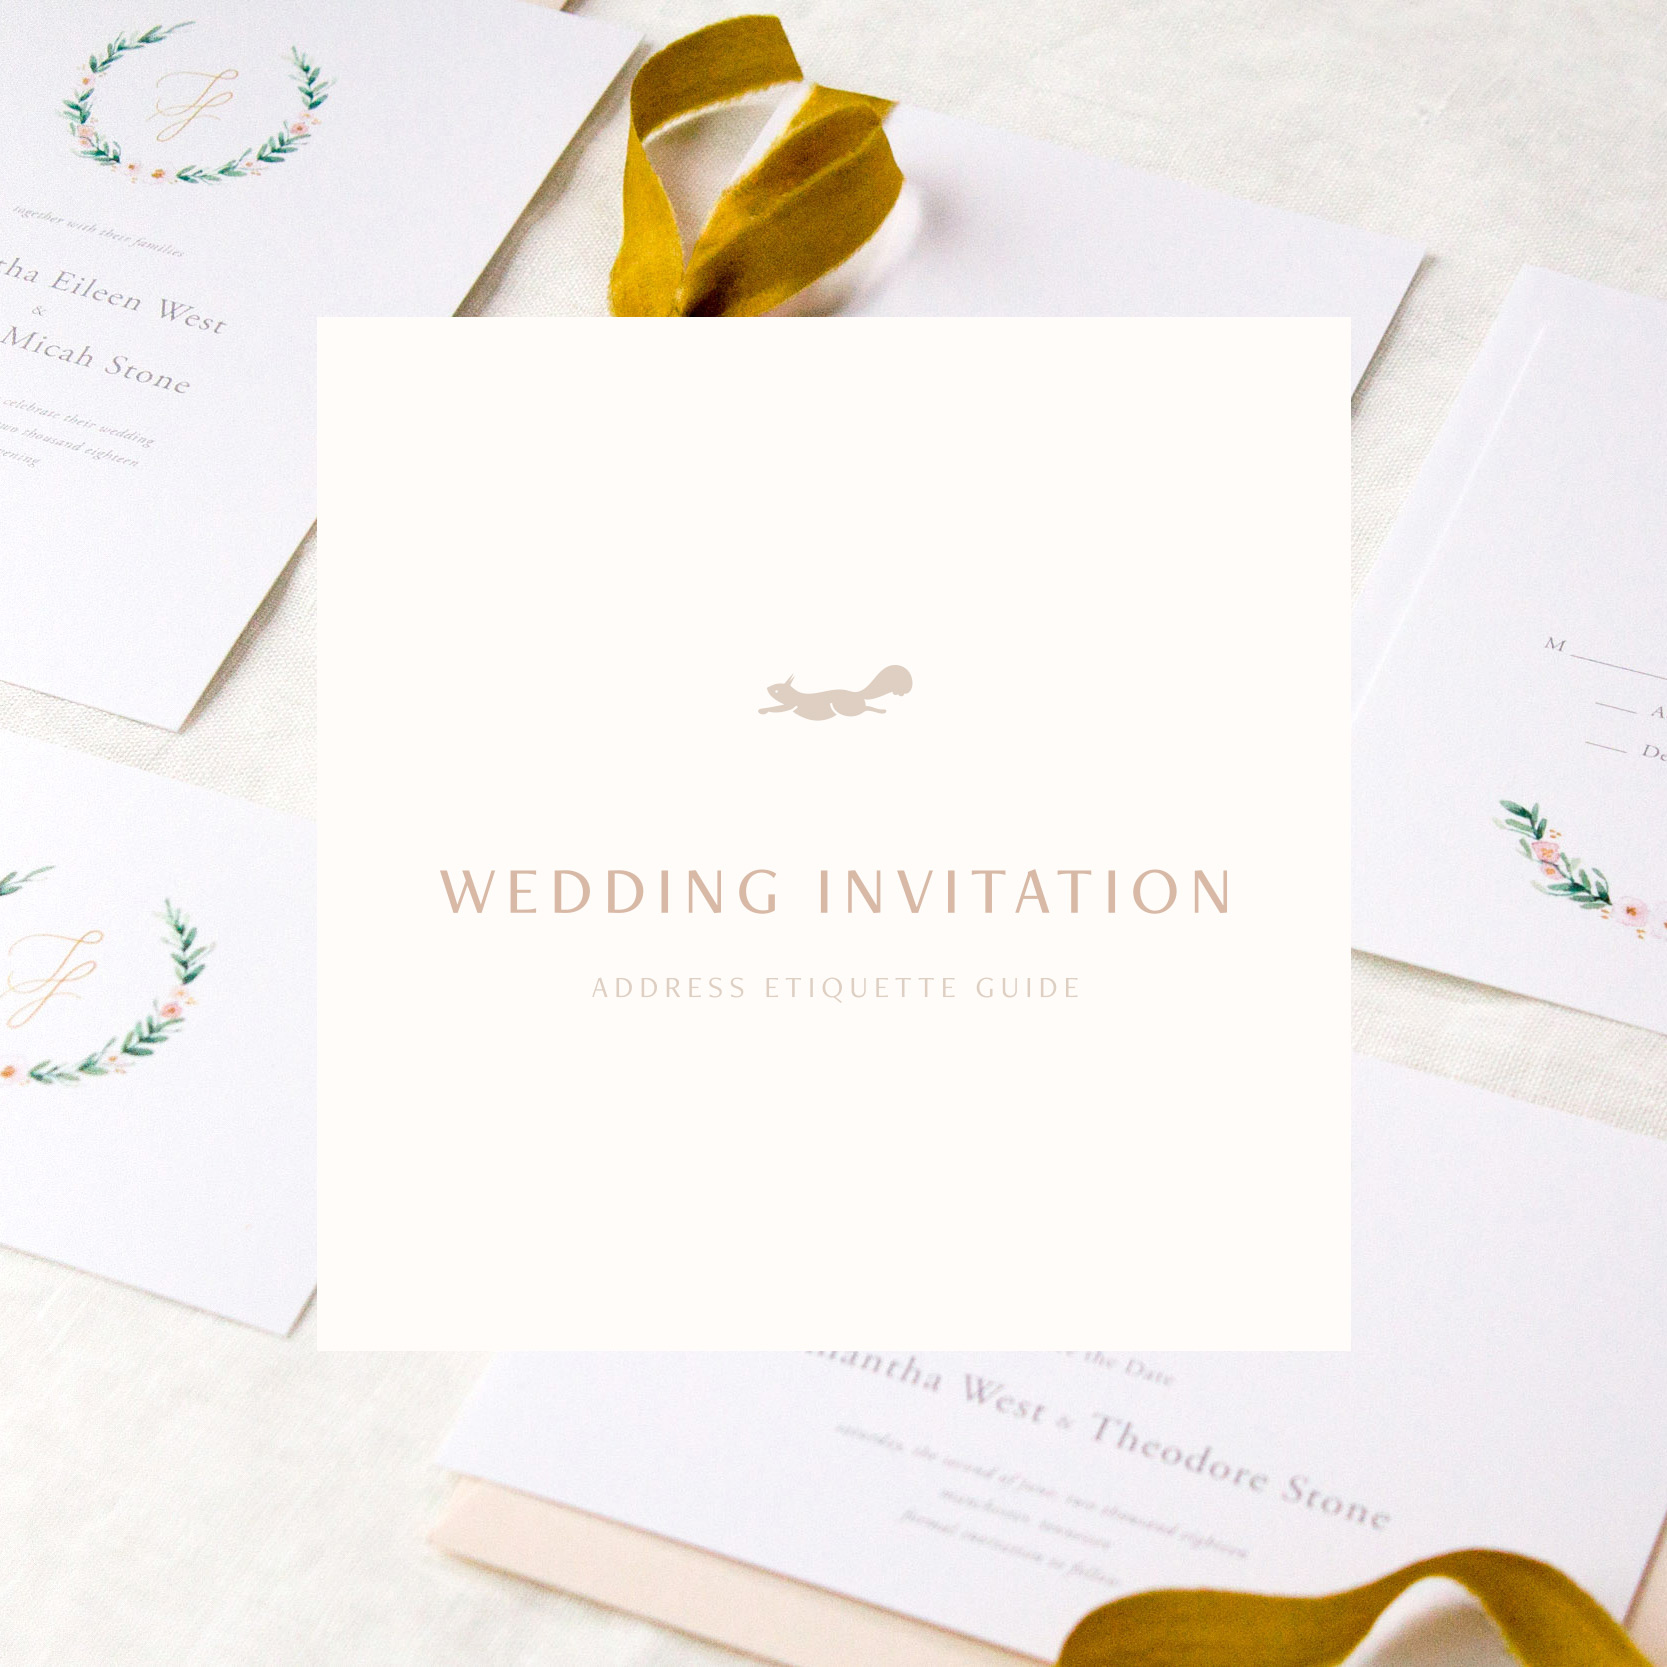 wedding-invitation-address-etiquette-guide.jpg